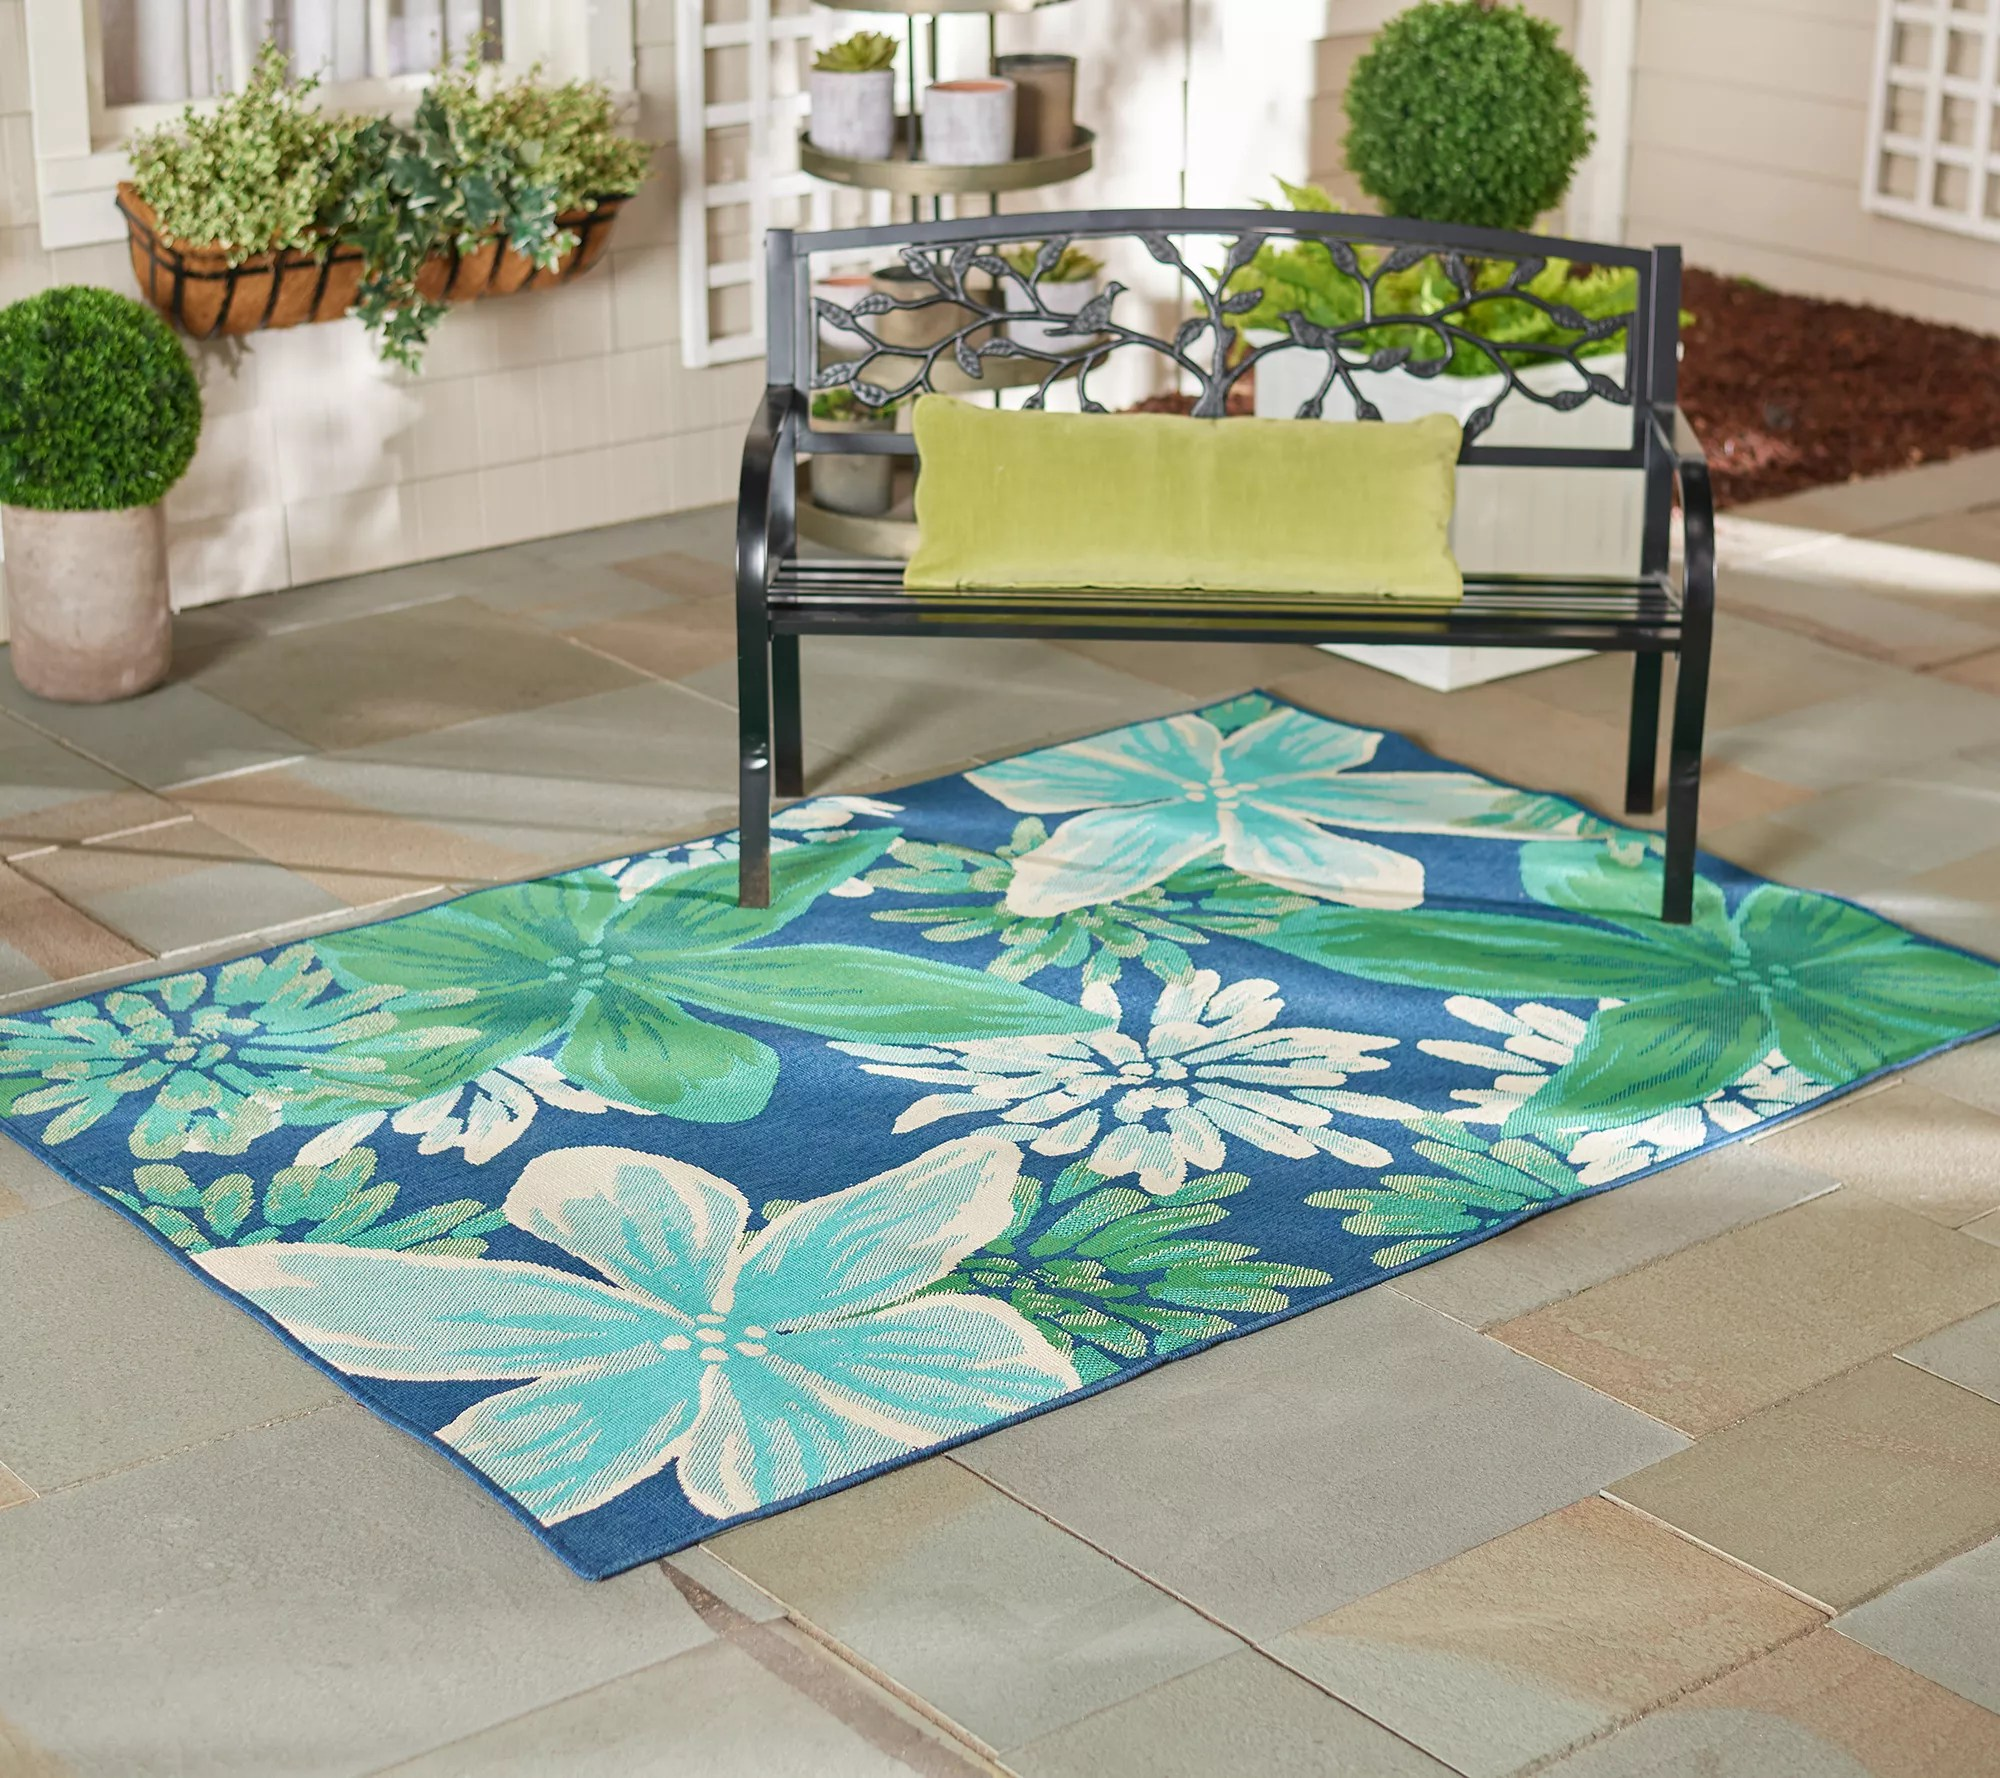 tommy bahama 5 1 x 7 whimsical floral indoor outdoor rug qvc com